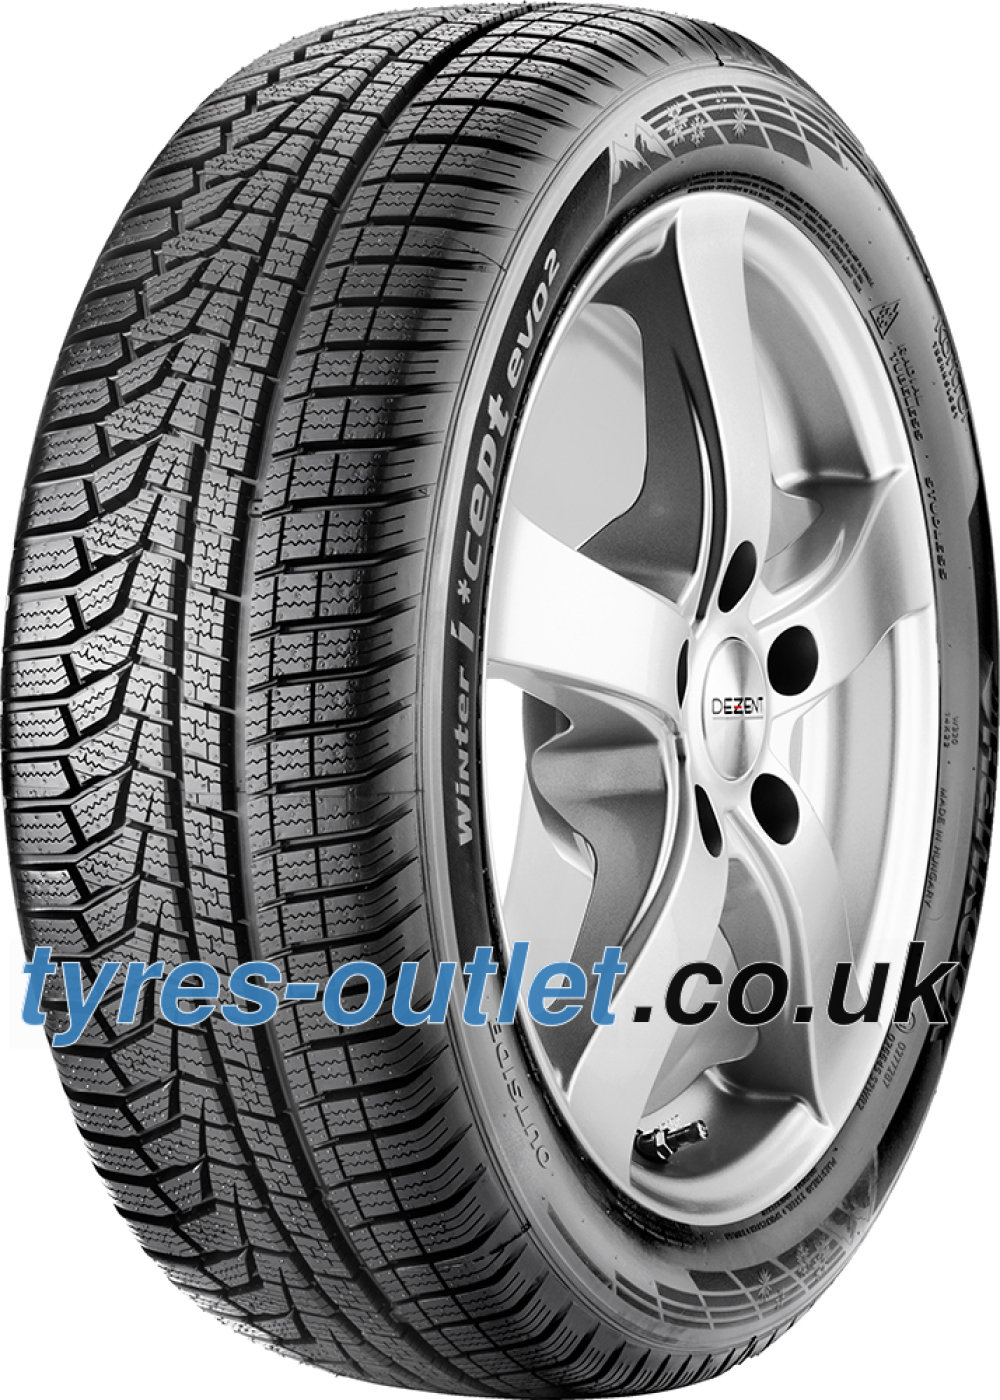 Hankook i*cept evo² (W320) ( 235/55 R17 103V XL , with rim protection (MFS) SBL )